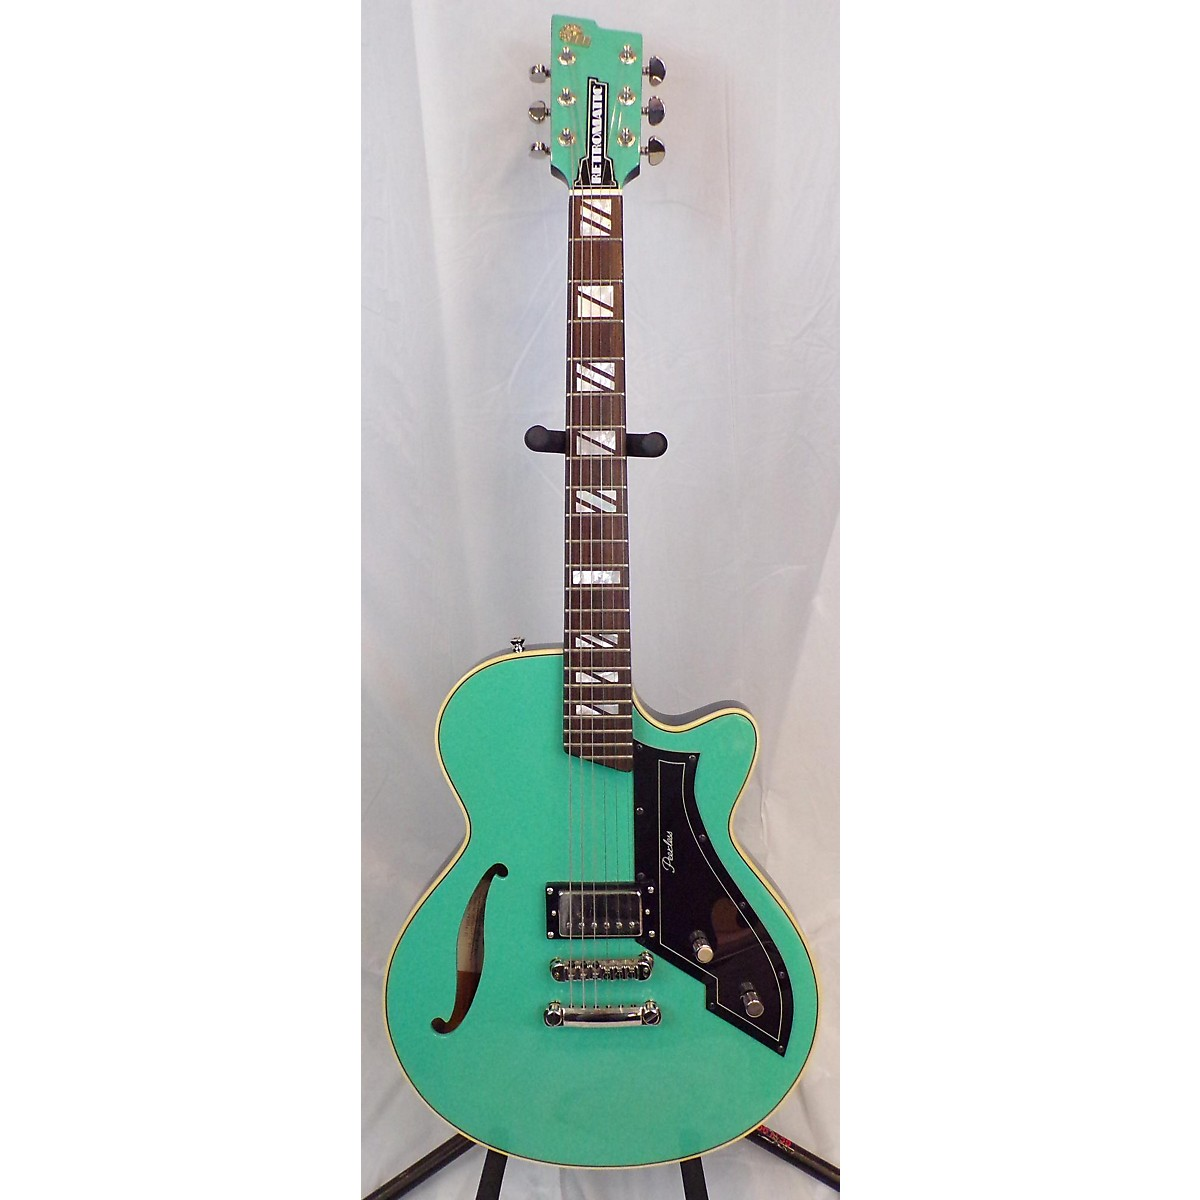 PEERLESS Retromatic P1 Hollow Body Electric Guitar